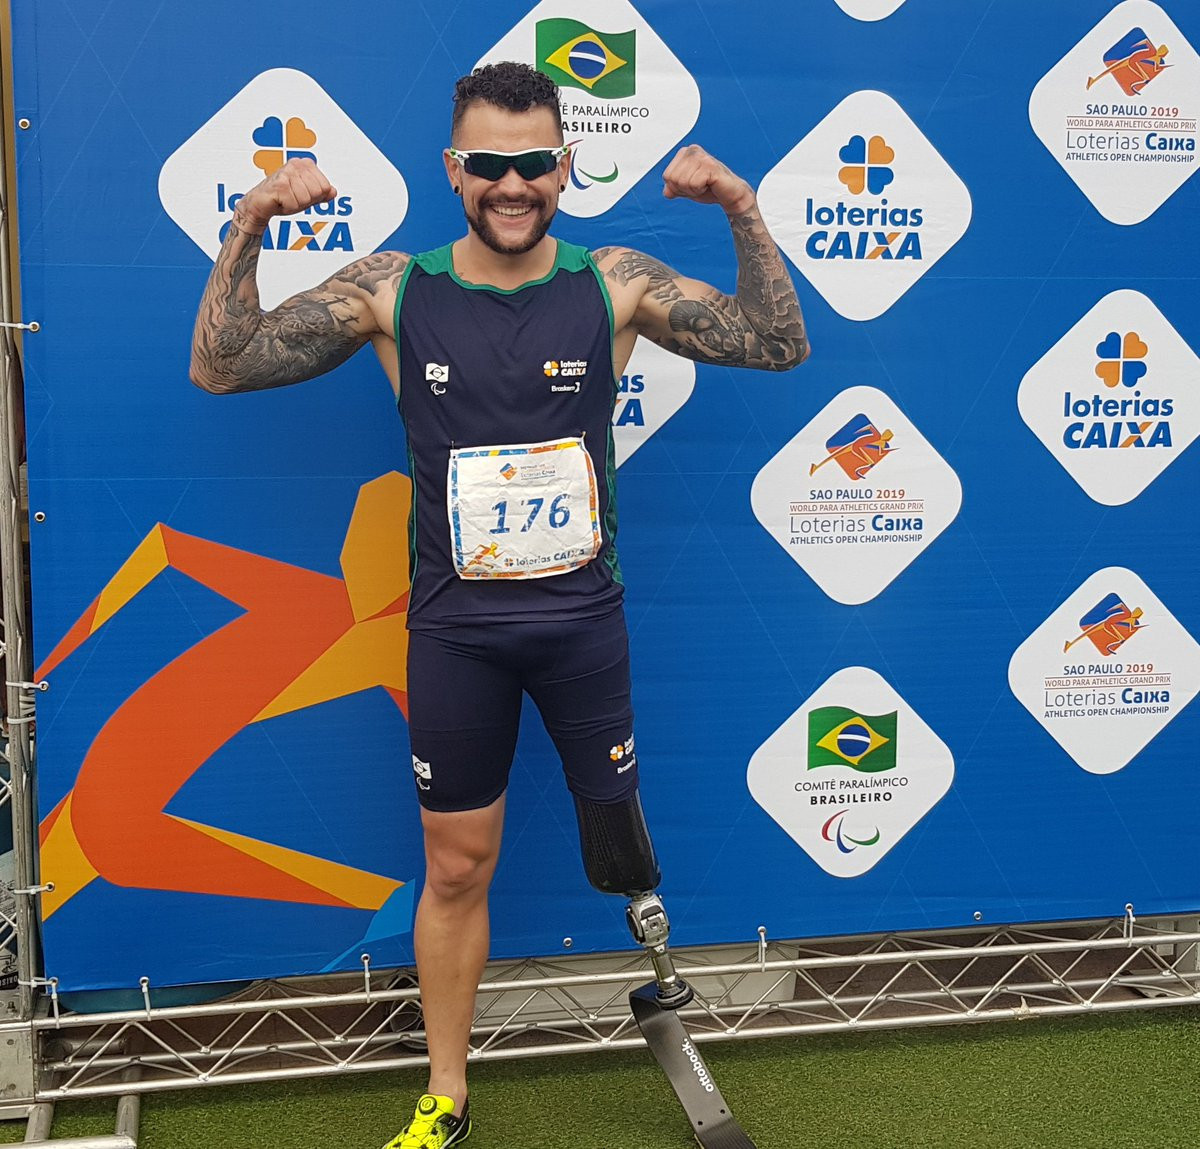 Brazil's Vinicius Rodrigues broke a world record on the opening day of the World Para Athletics Grand Prix in São Paulo ©Para Athletics